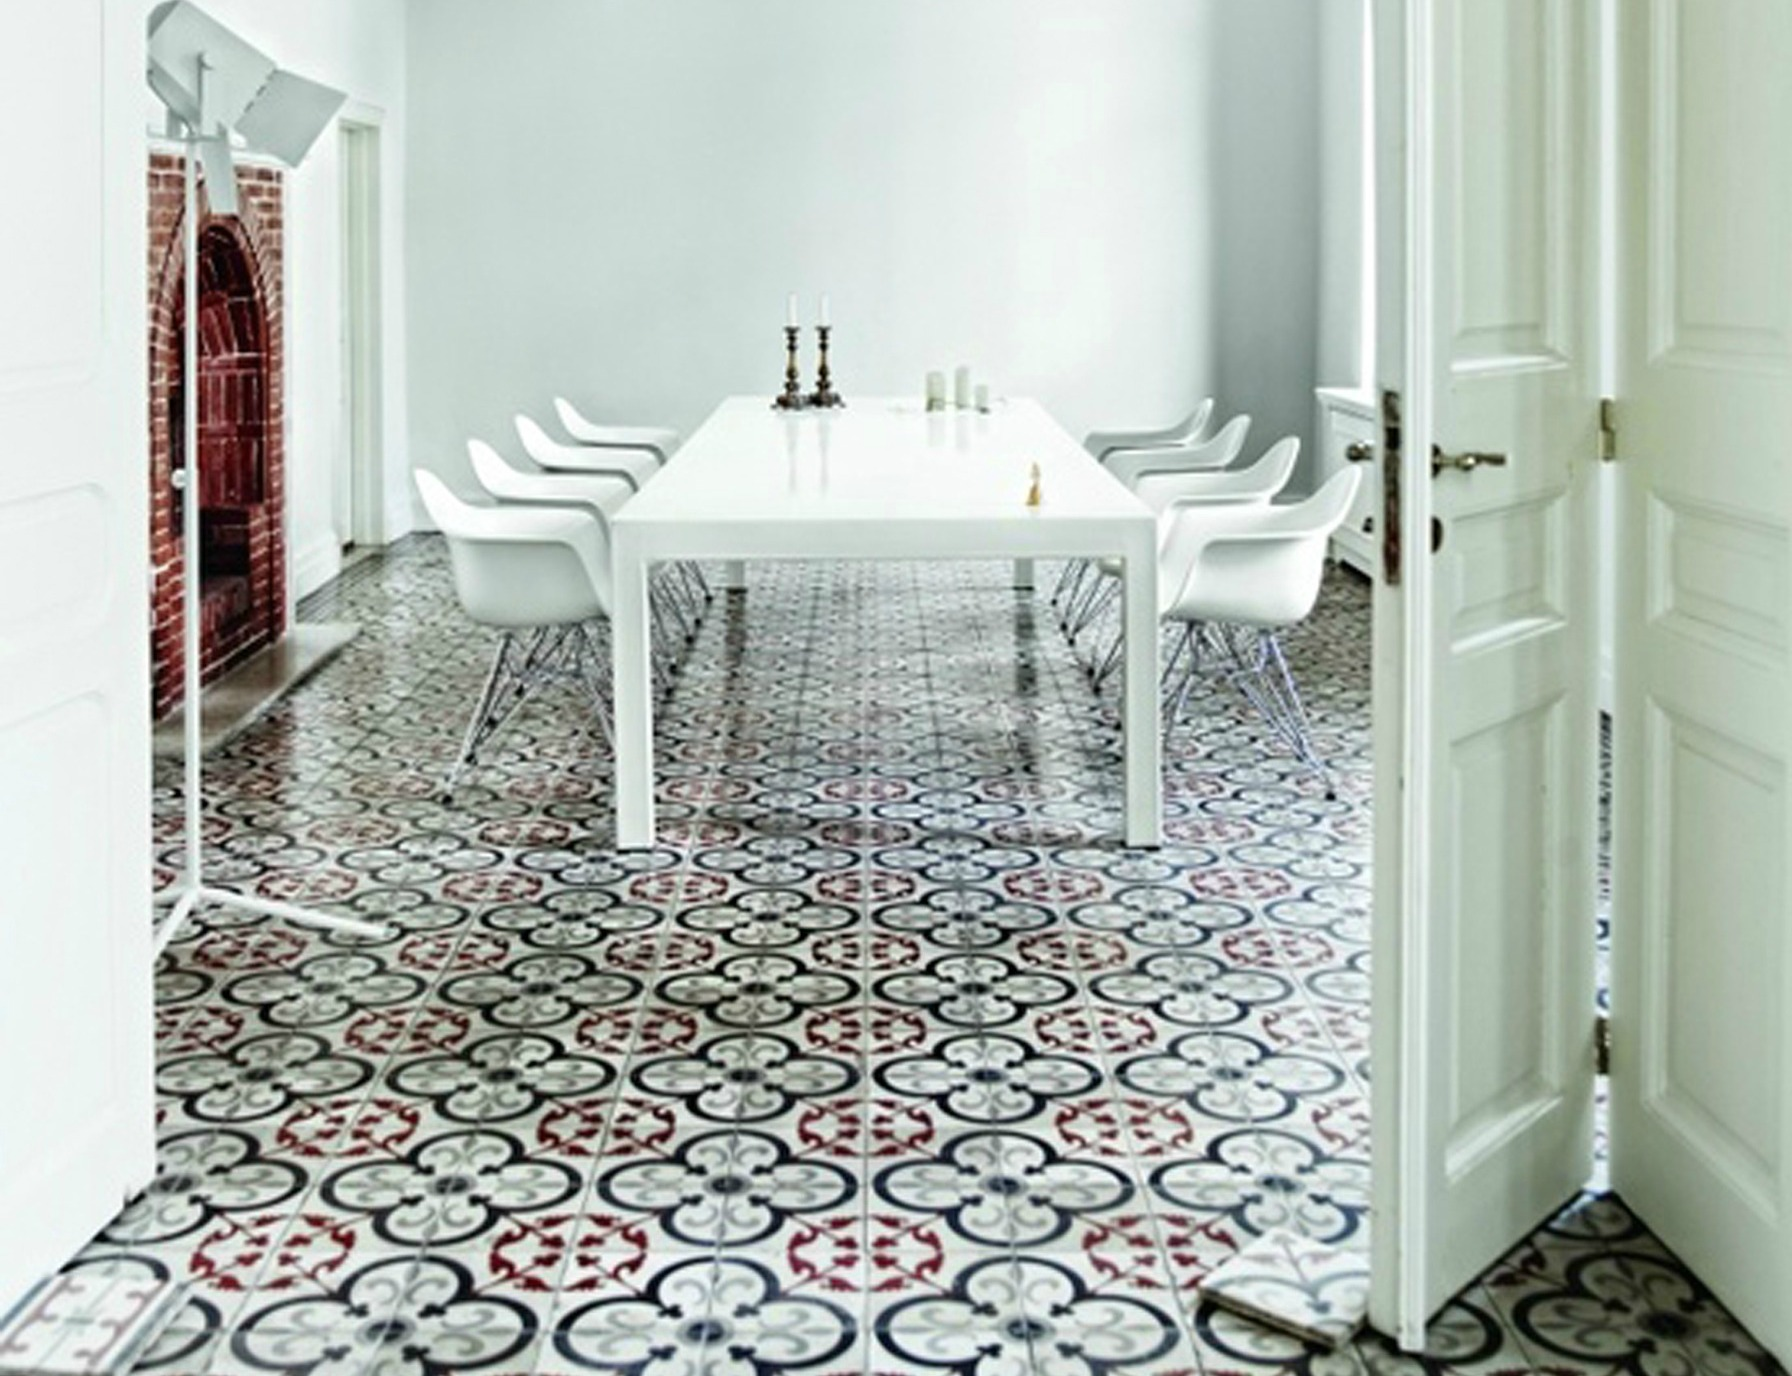 encaustic cement tiles from terrazo tiles